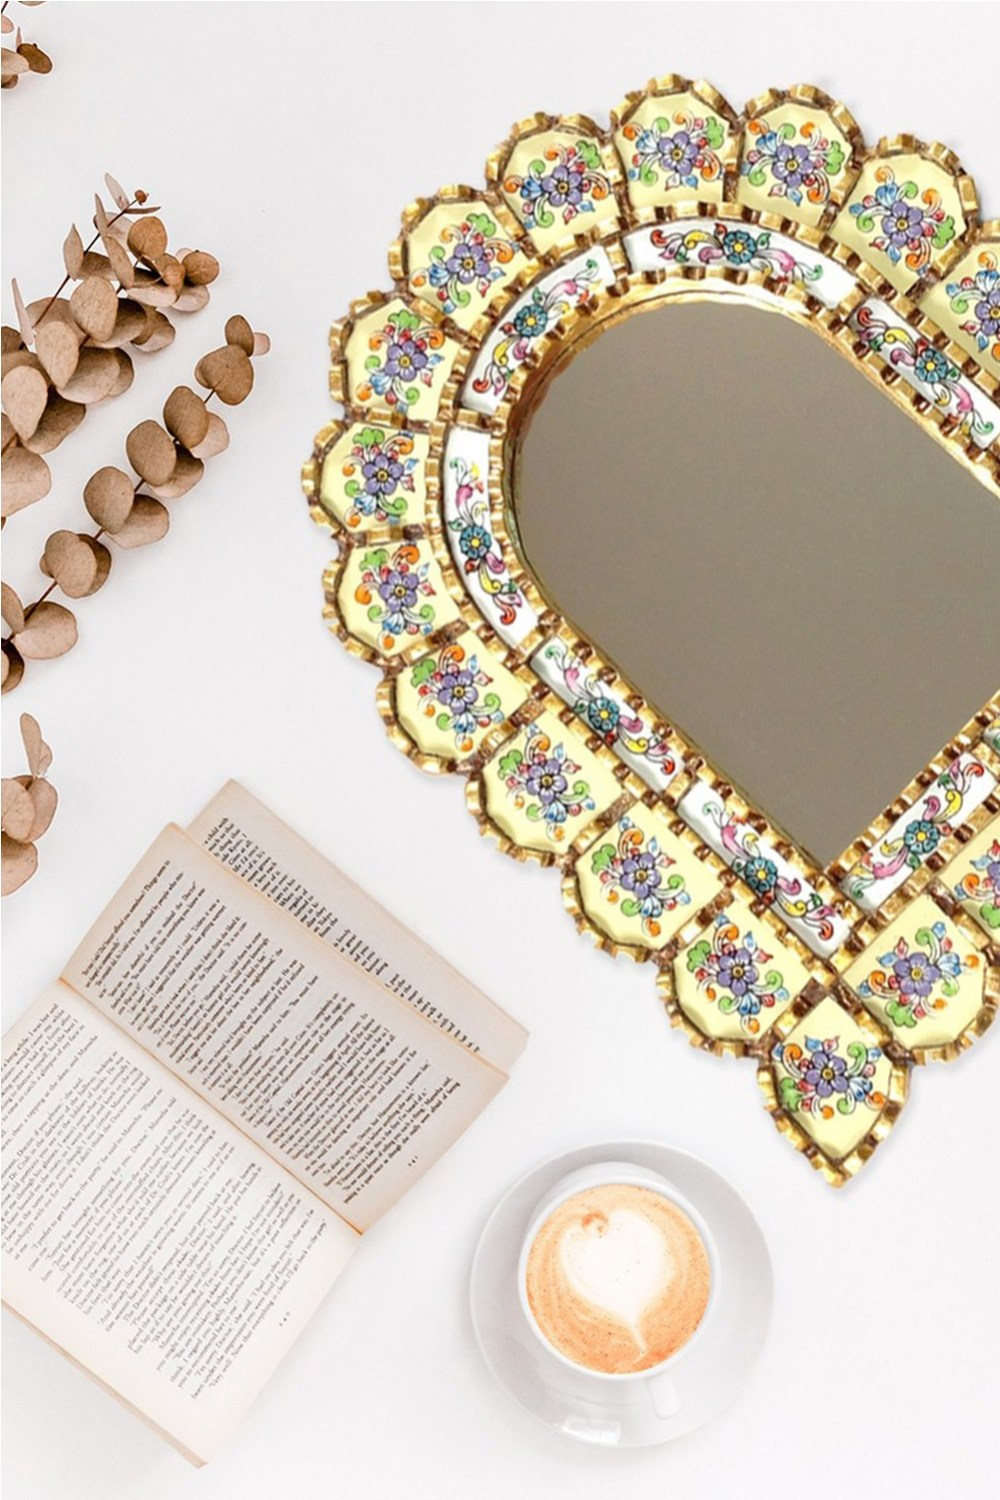 Beautifully made mirror!